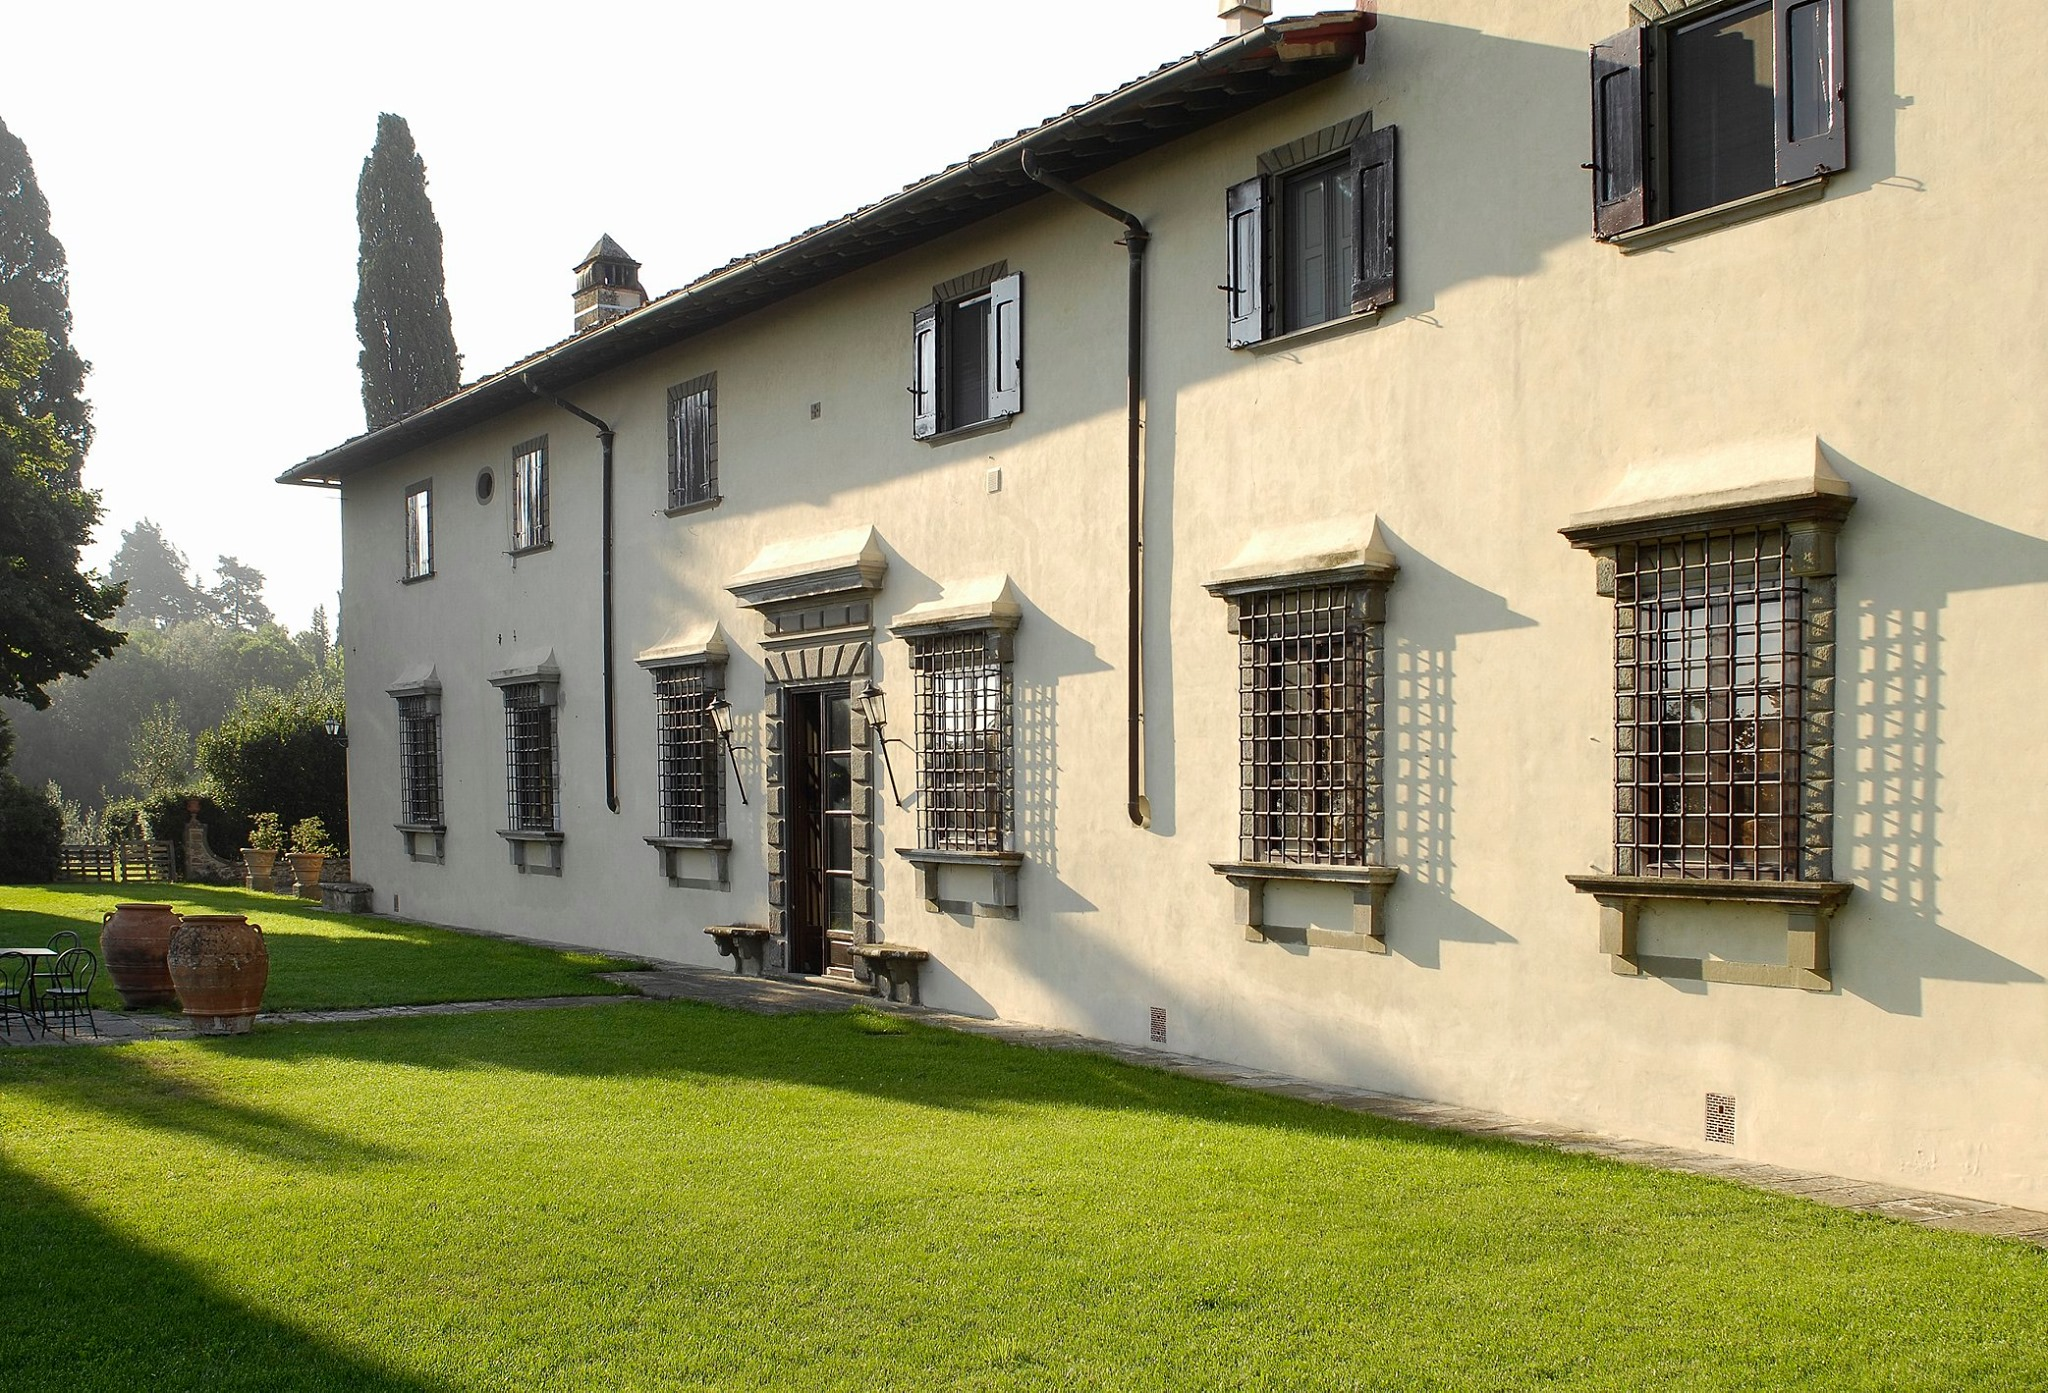 Beautiful estate and courtyard in the winery Fattoria Montanine.